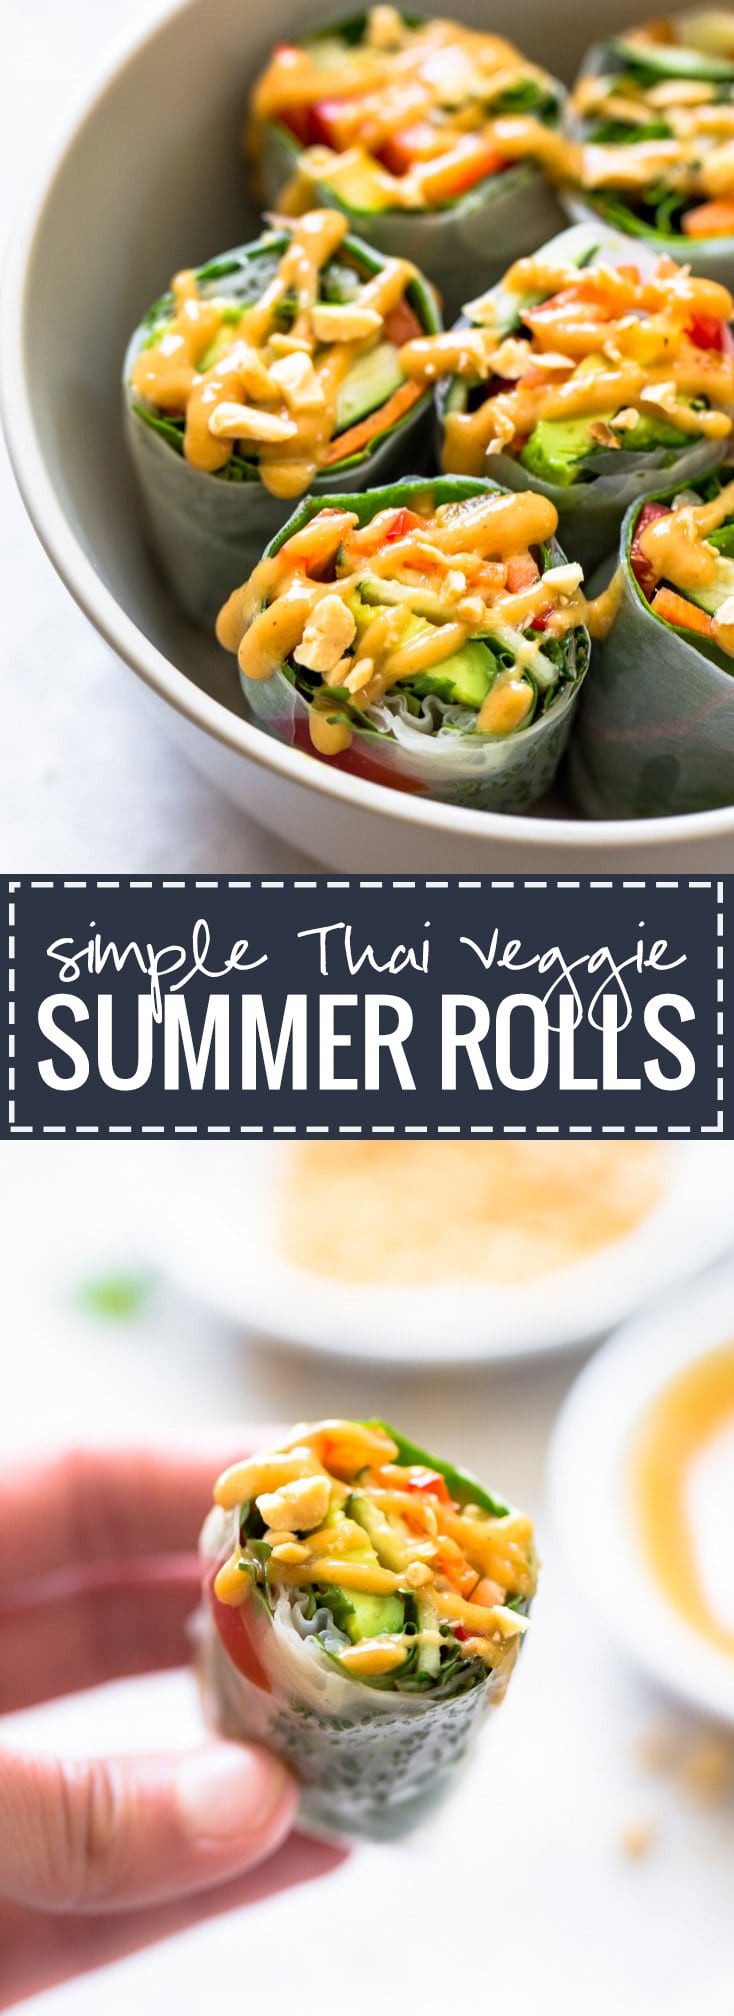 Thai Summer Rolls Recipes  Thai Summer Rolls with Peanut Sauce Recipe Pinch of Yum